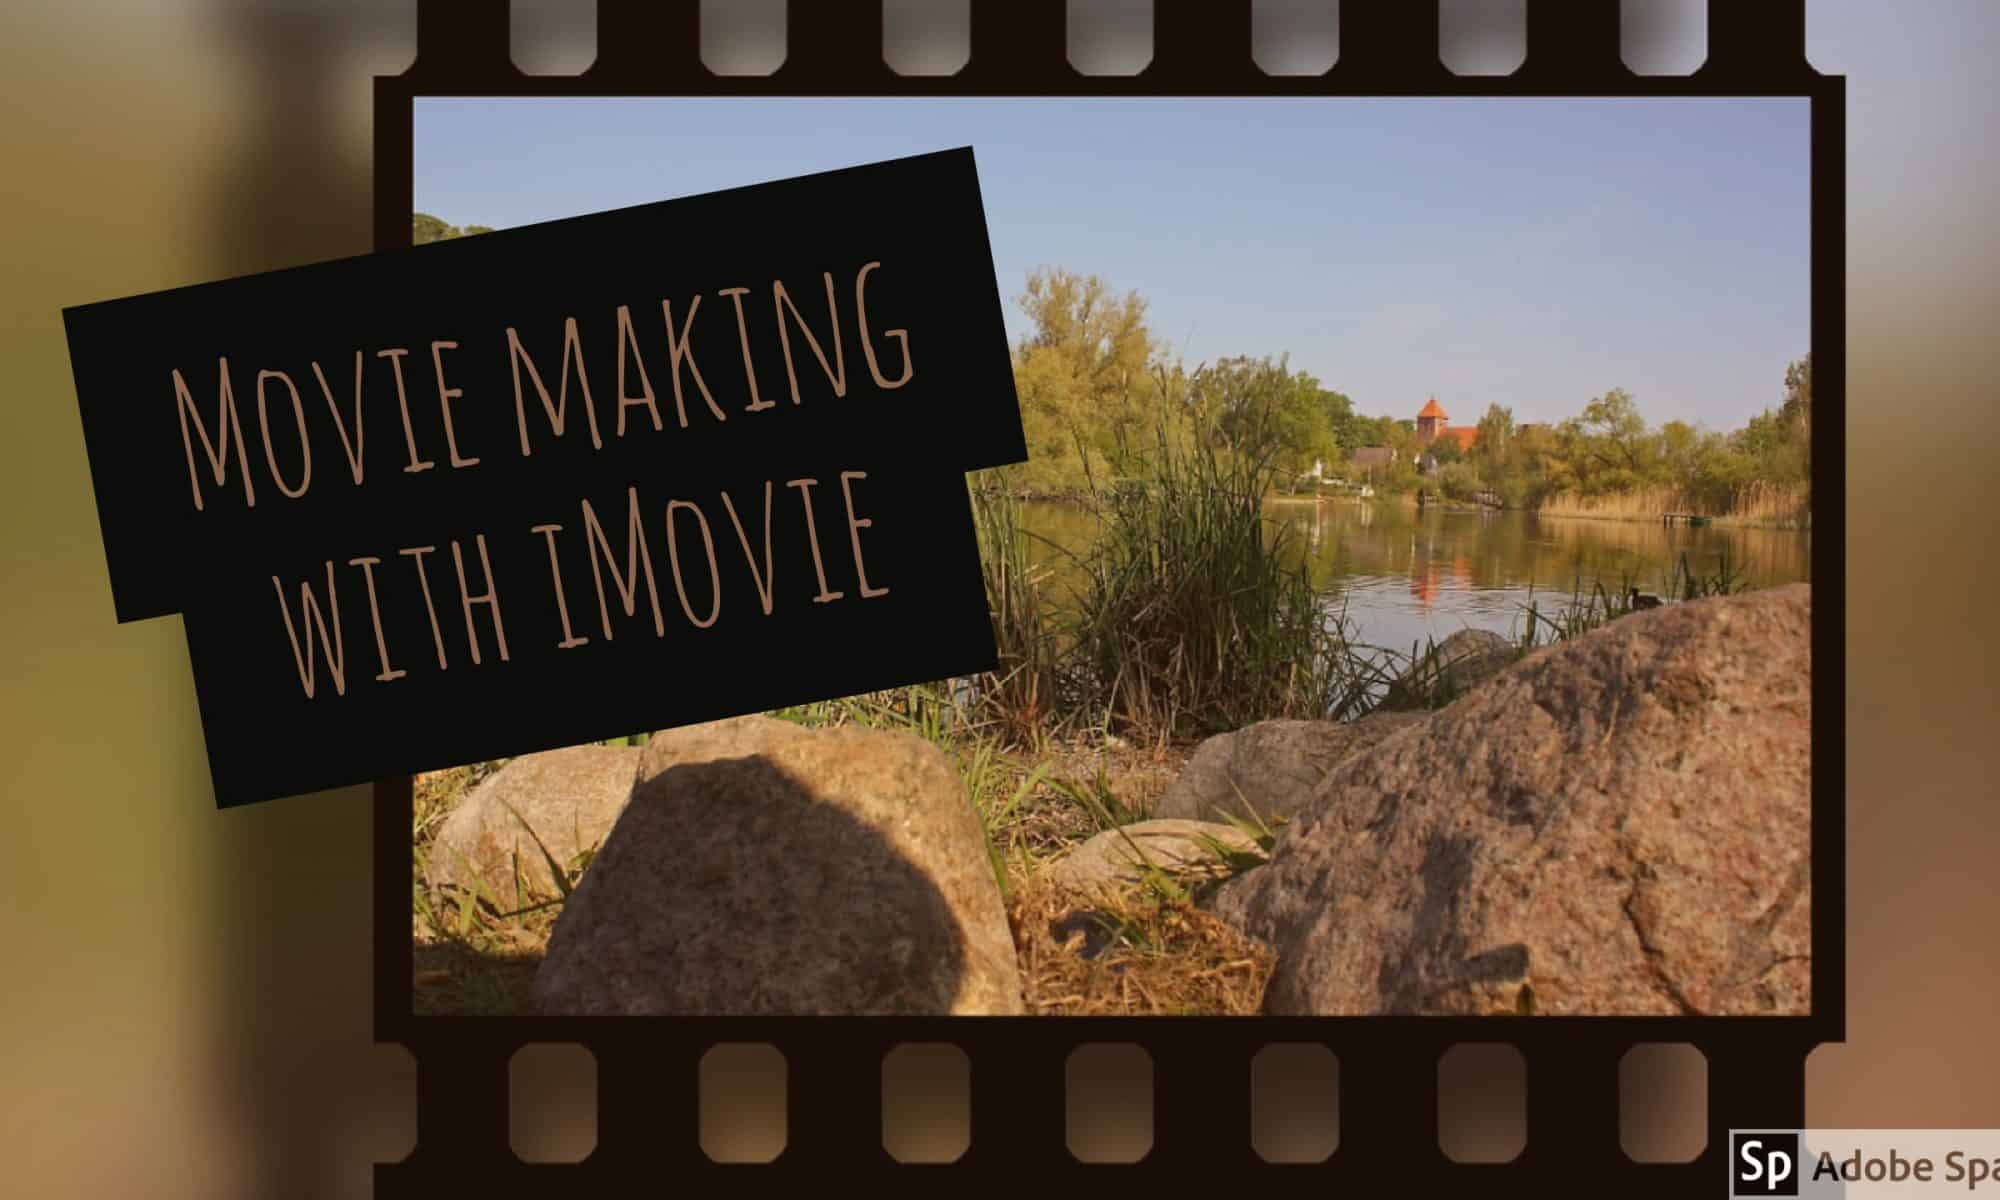 Movie Making with iMovie